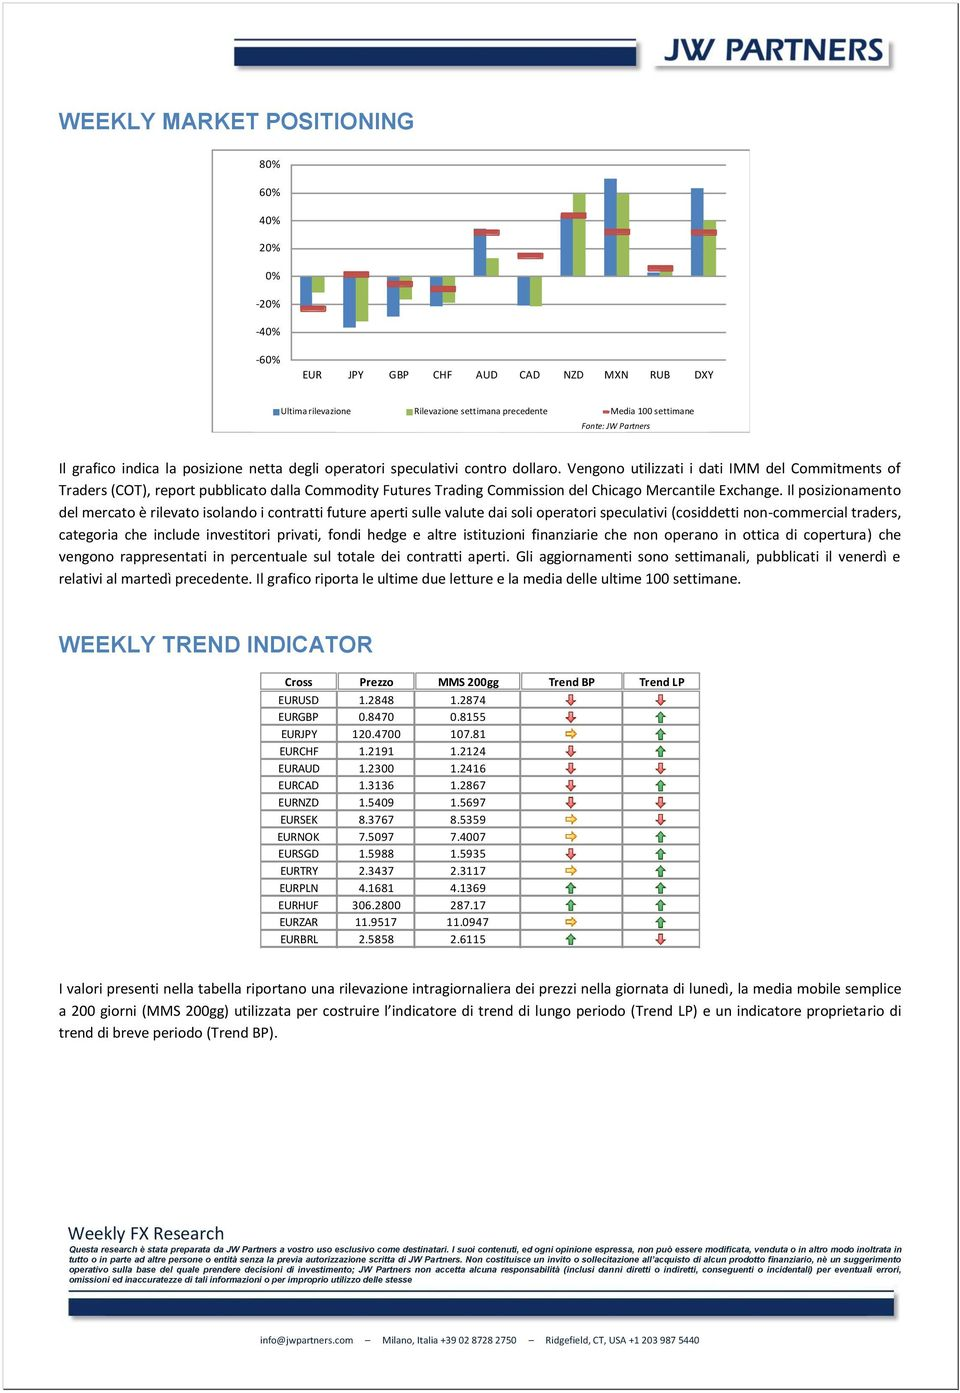 Vengono utilizzati i dati IMM del Commitments of Traders (COT), report pubblicato dalla Commodity Futures Trading Commission del Chicago Mercantile Exchange.